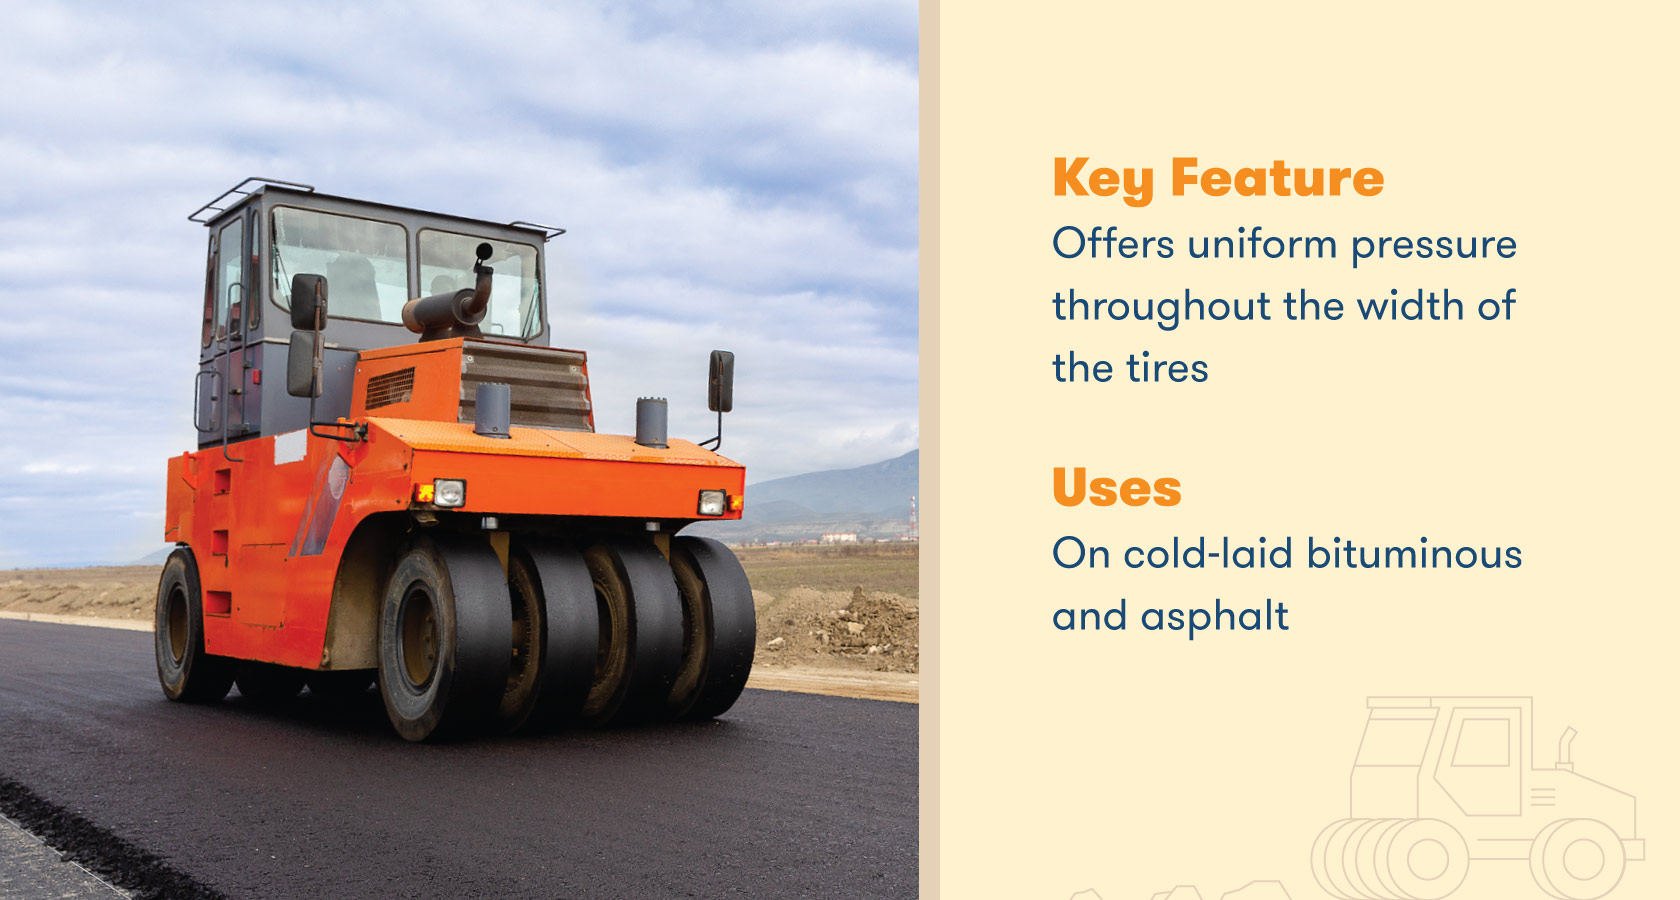 Offers uniform pressure throughout the width of the tires